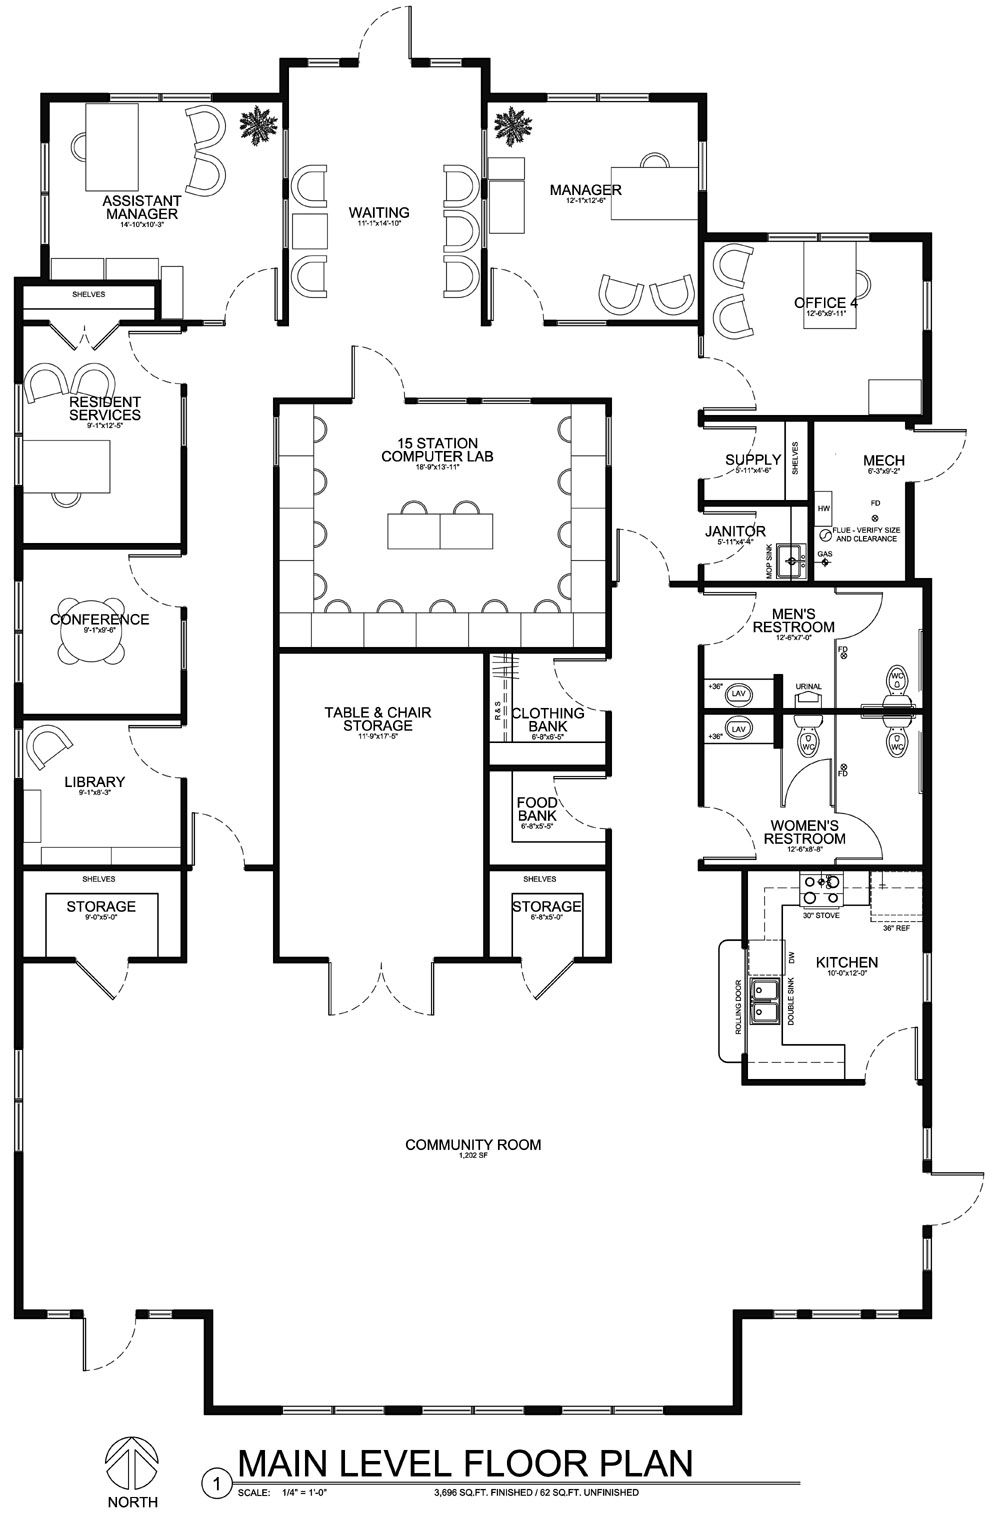 Image Result For Small School Floor Plans Office Floor Plan School Floor Plan Floor Plans